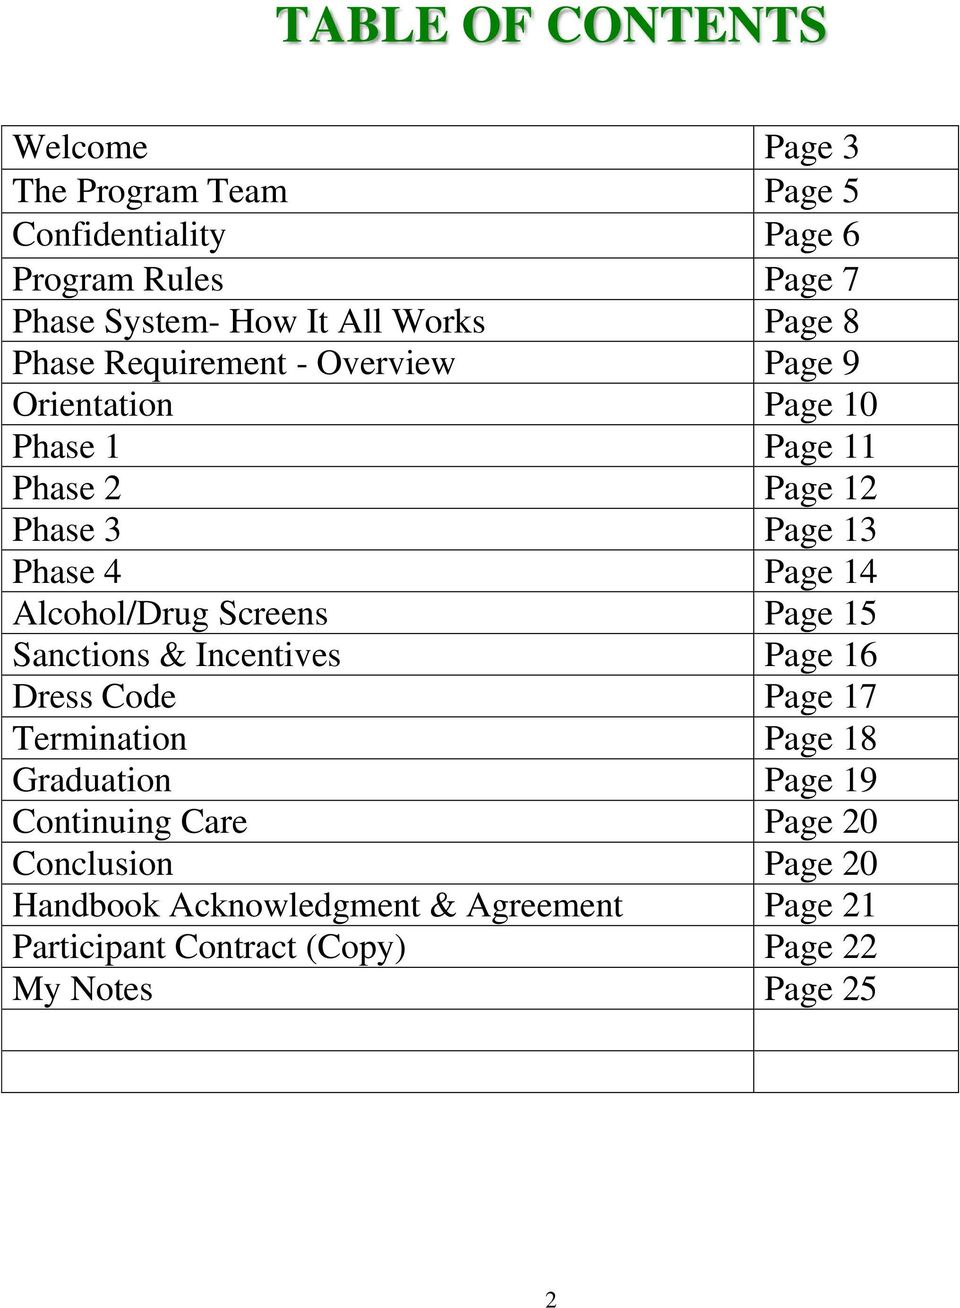 14 Alcohol/Drug Screens Page 15 Sanctions & Incentives Page 16 Dress Code Page 17 Termination Page 18 Graduation Page 19